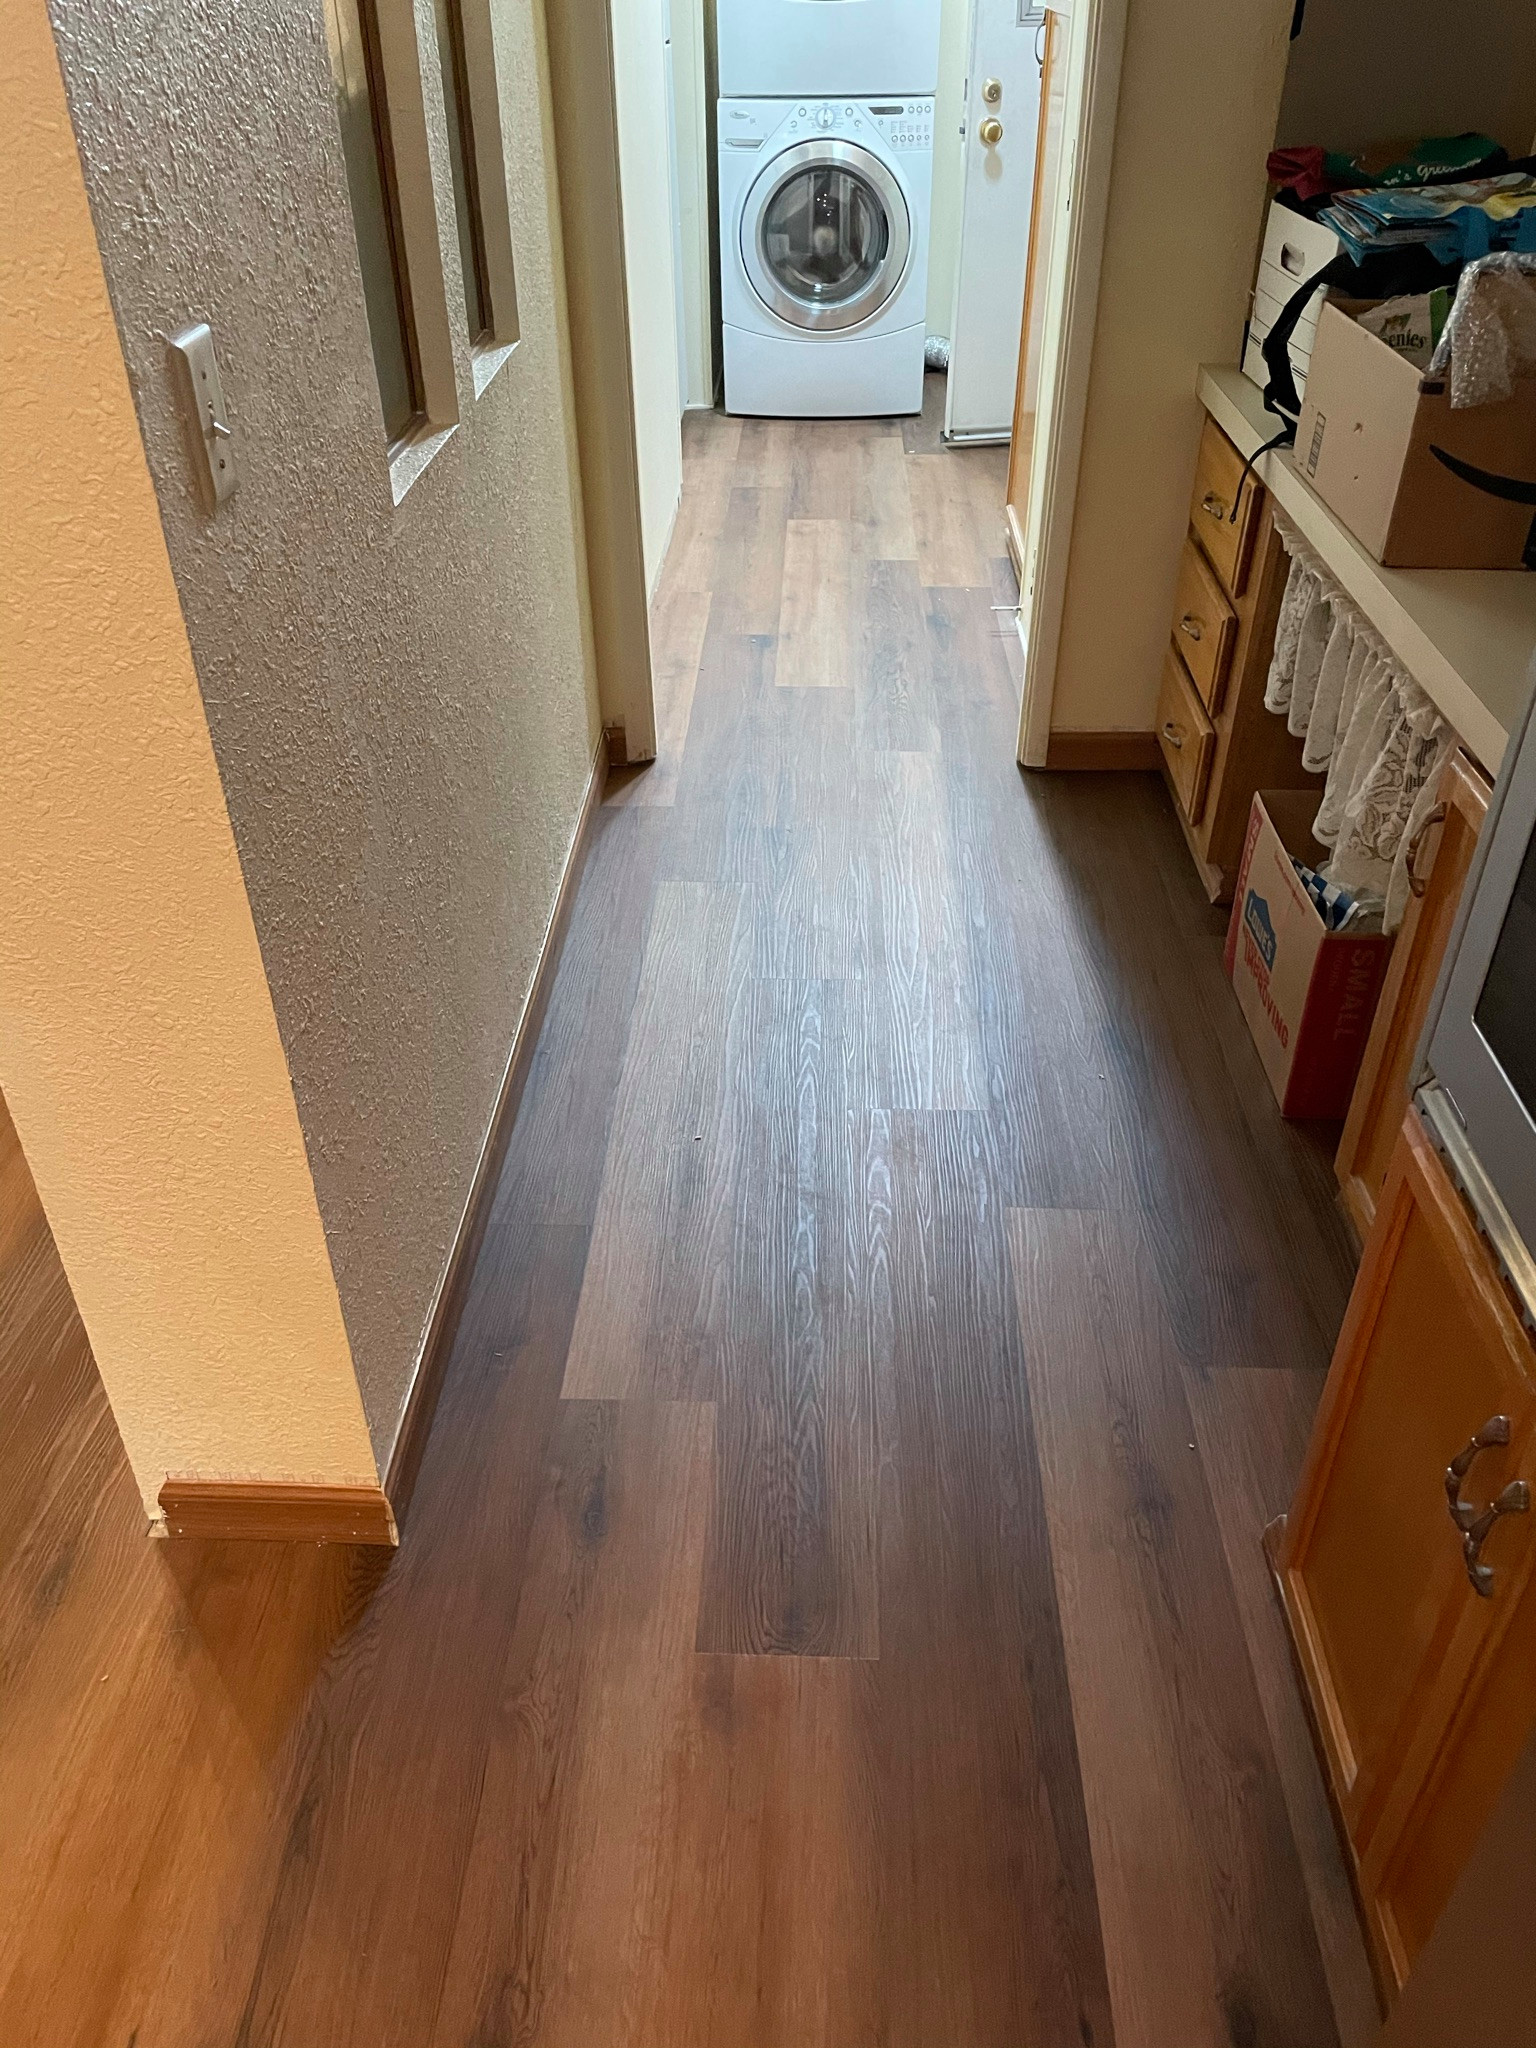 Hallway Leading to Laundry Room